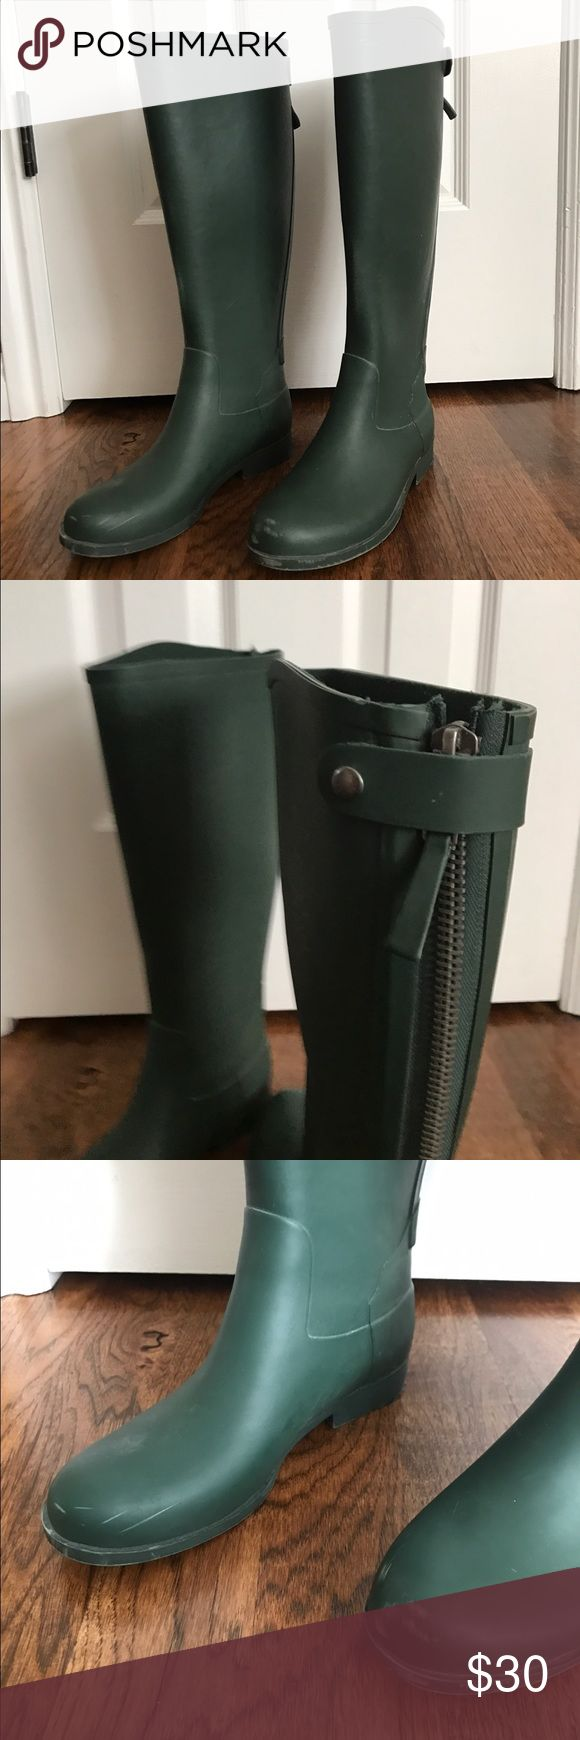 J. Crew Weatherby Hunter Green Rain Boots The beautiful sold out style of dark green weatherby boots. Only worn once or twice for short periods of time. A few small scuffs that can be buffed out according to Hunter boots polishing instructions. J. Crew Shoes Winter & Rain Boots